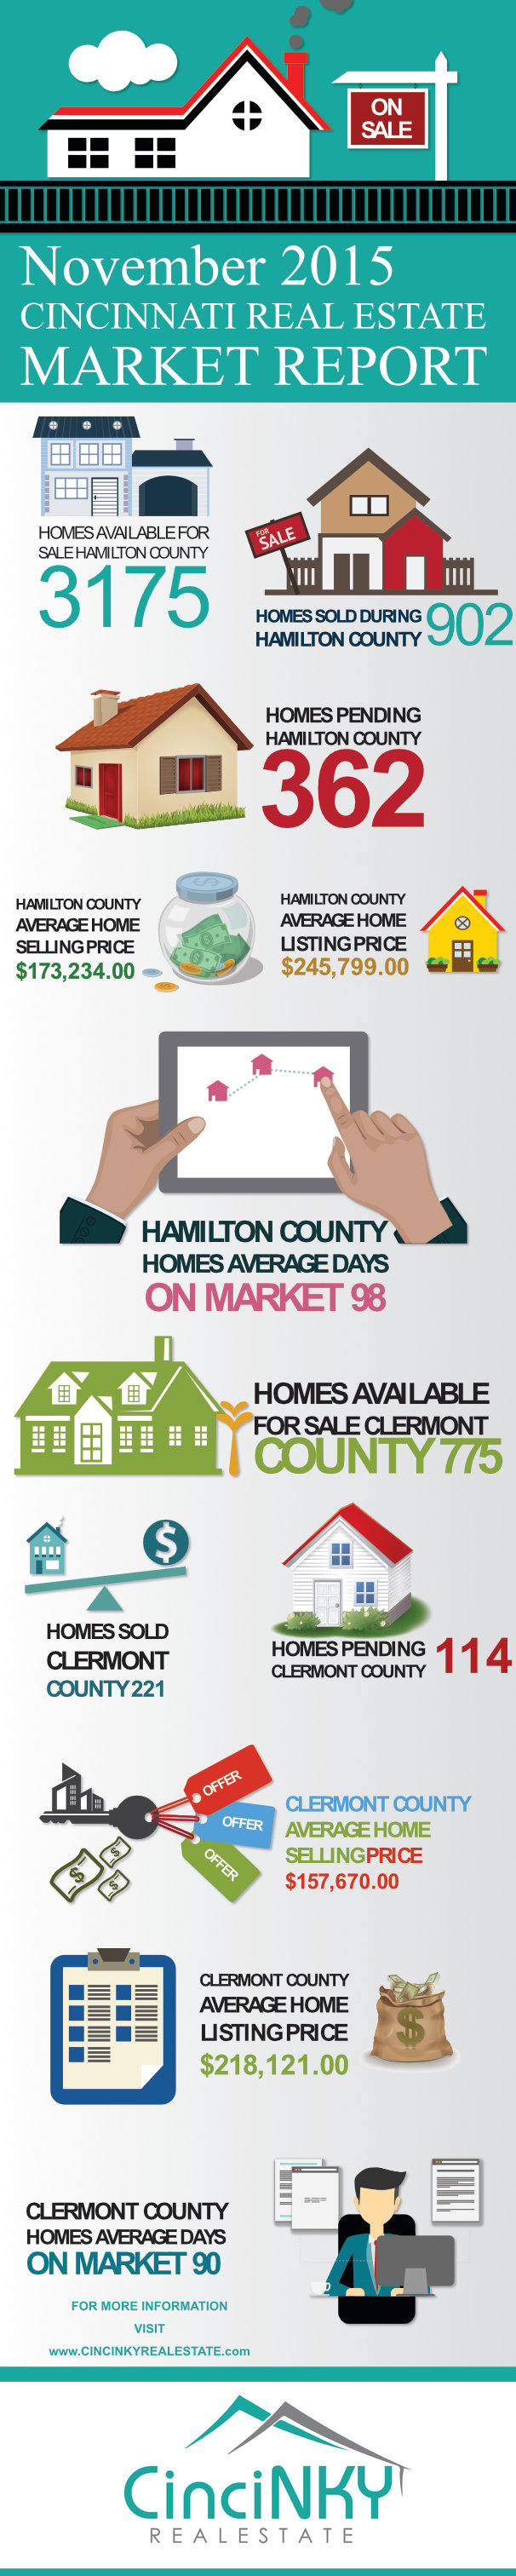 Greater Cincinnati November 2015 Real Estate Market Report Infographic